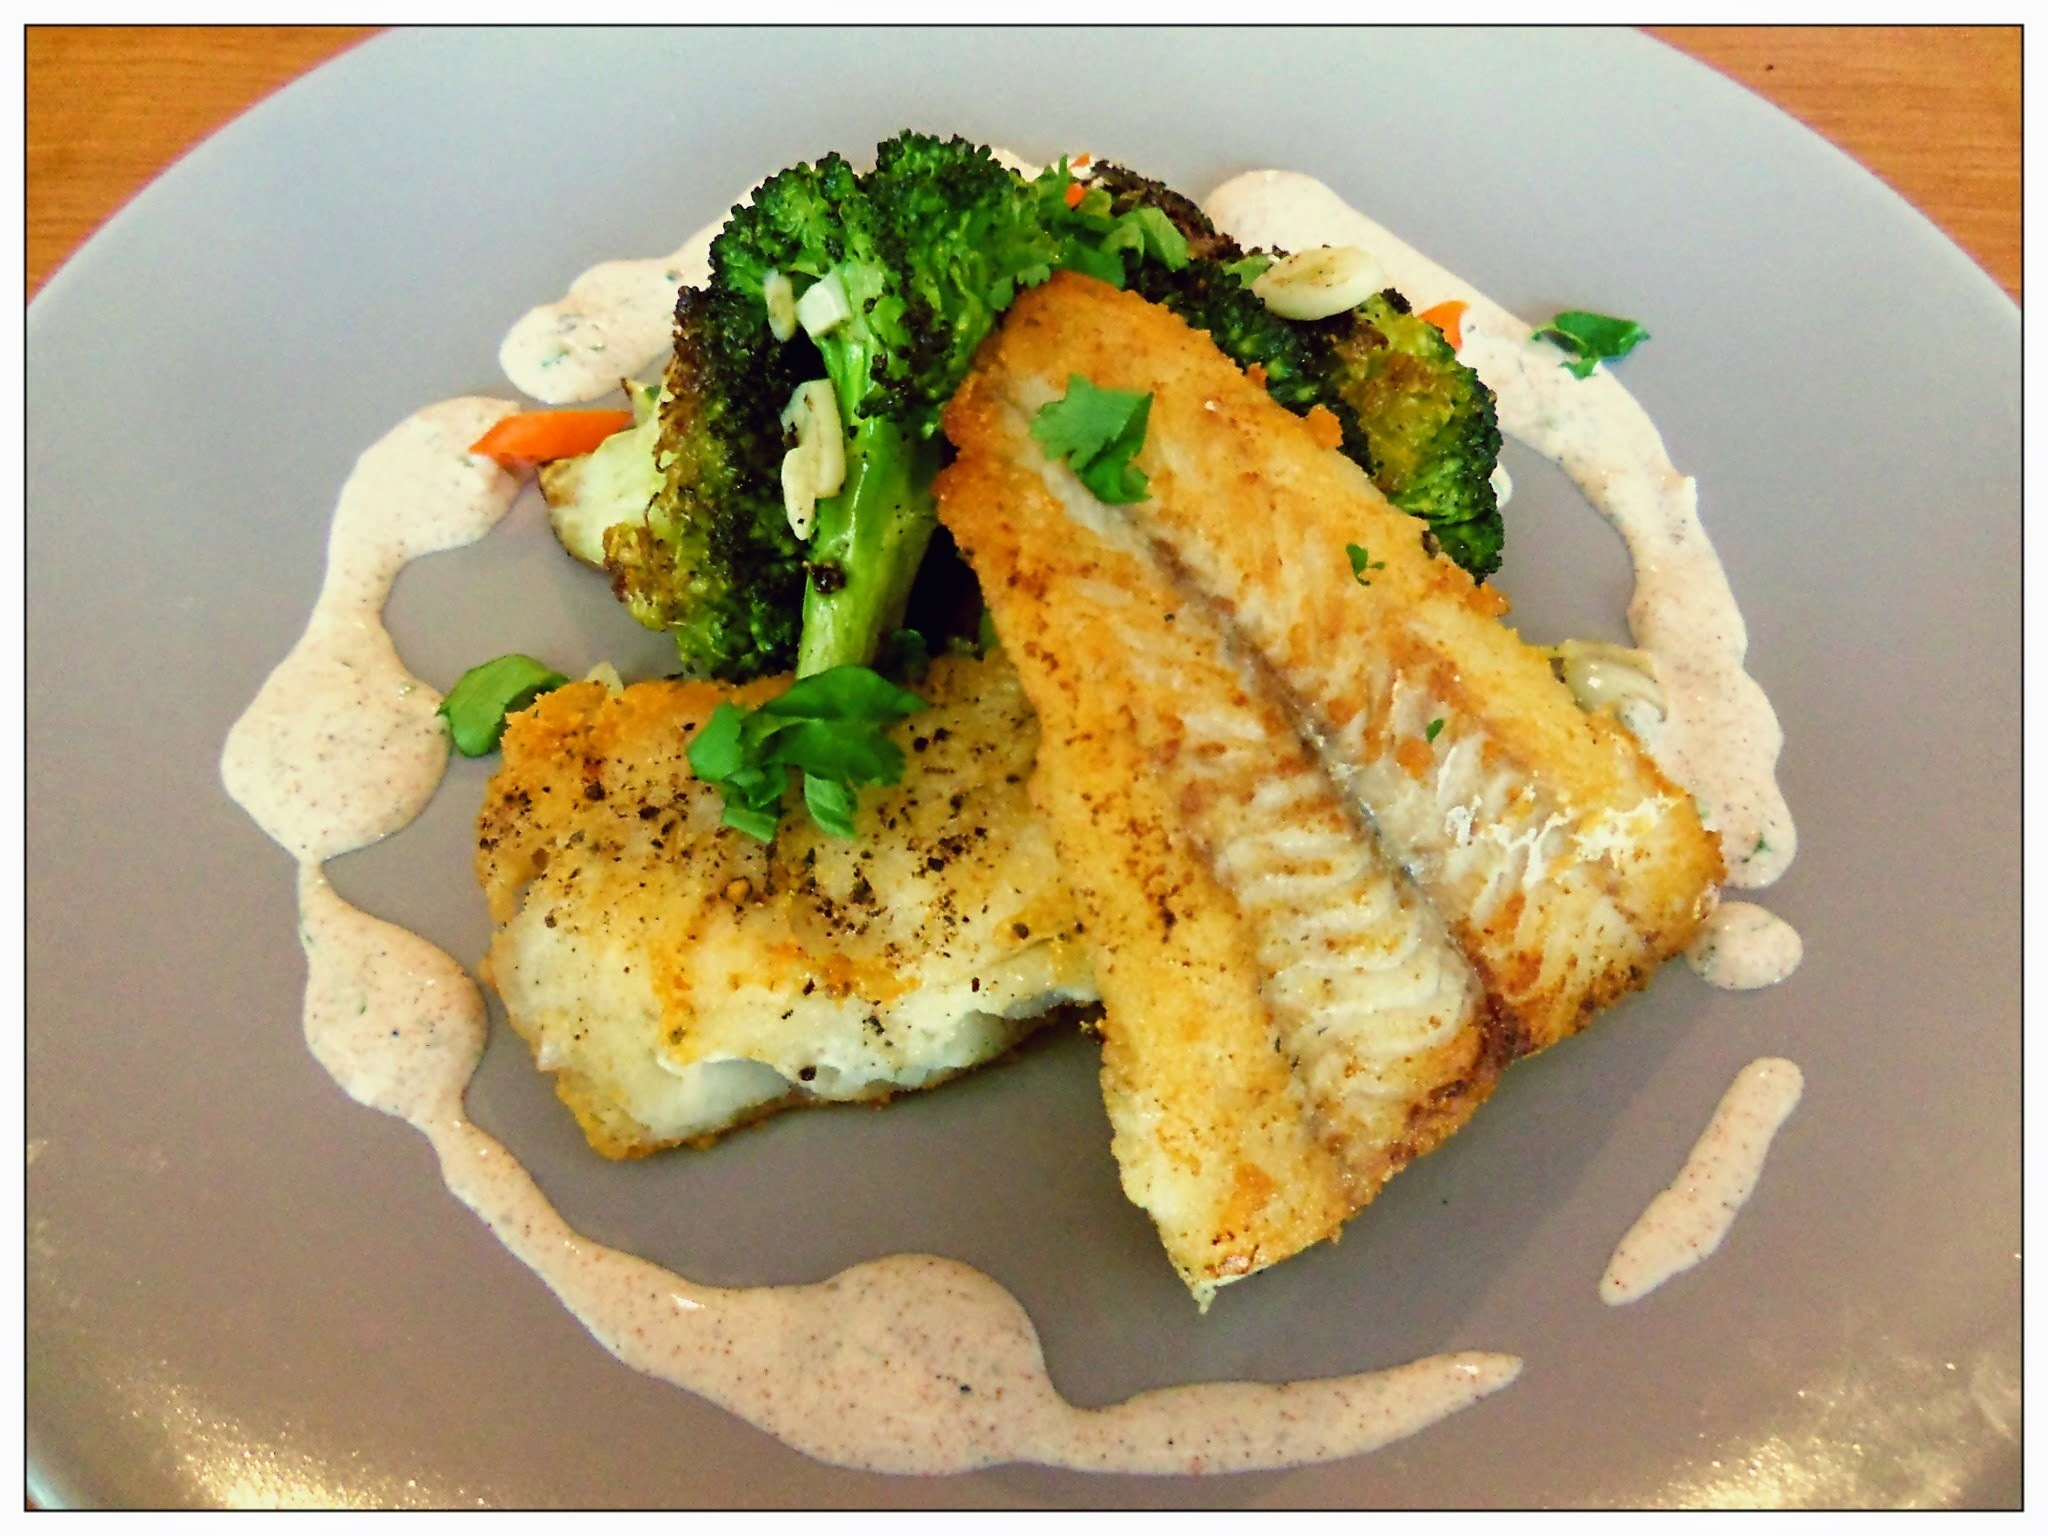 Fried Fish with Blistered Broccoli and Yogurt Sauce | You've Got Meal!